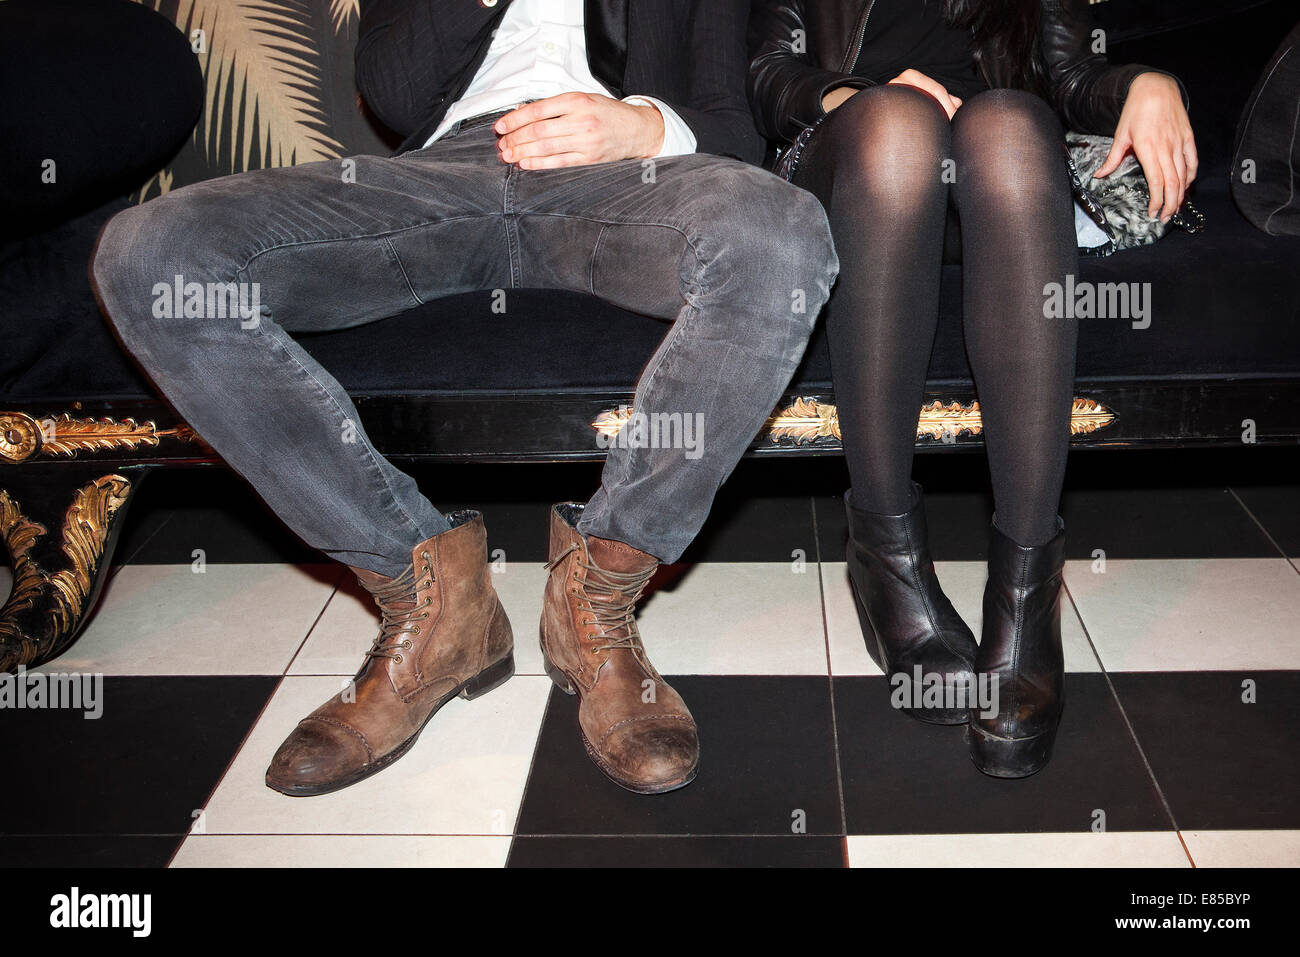 Young couple sitting side by side at night club - Stock Image